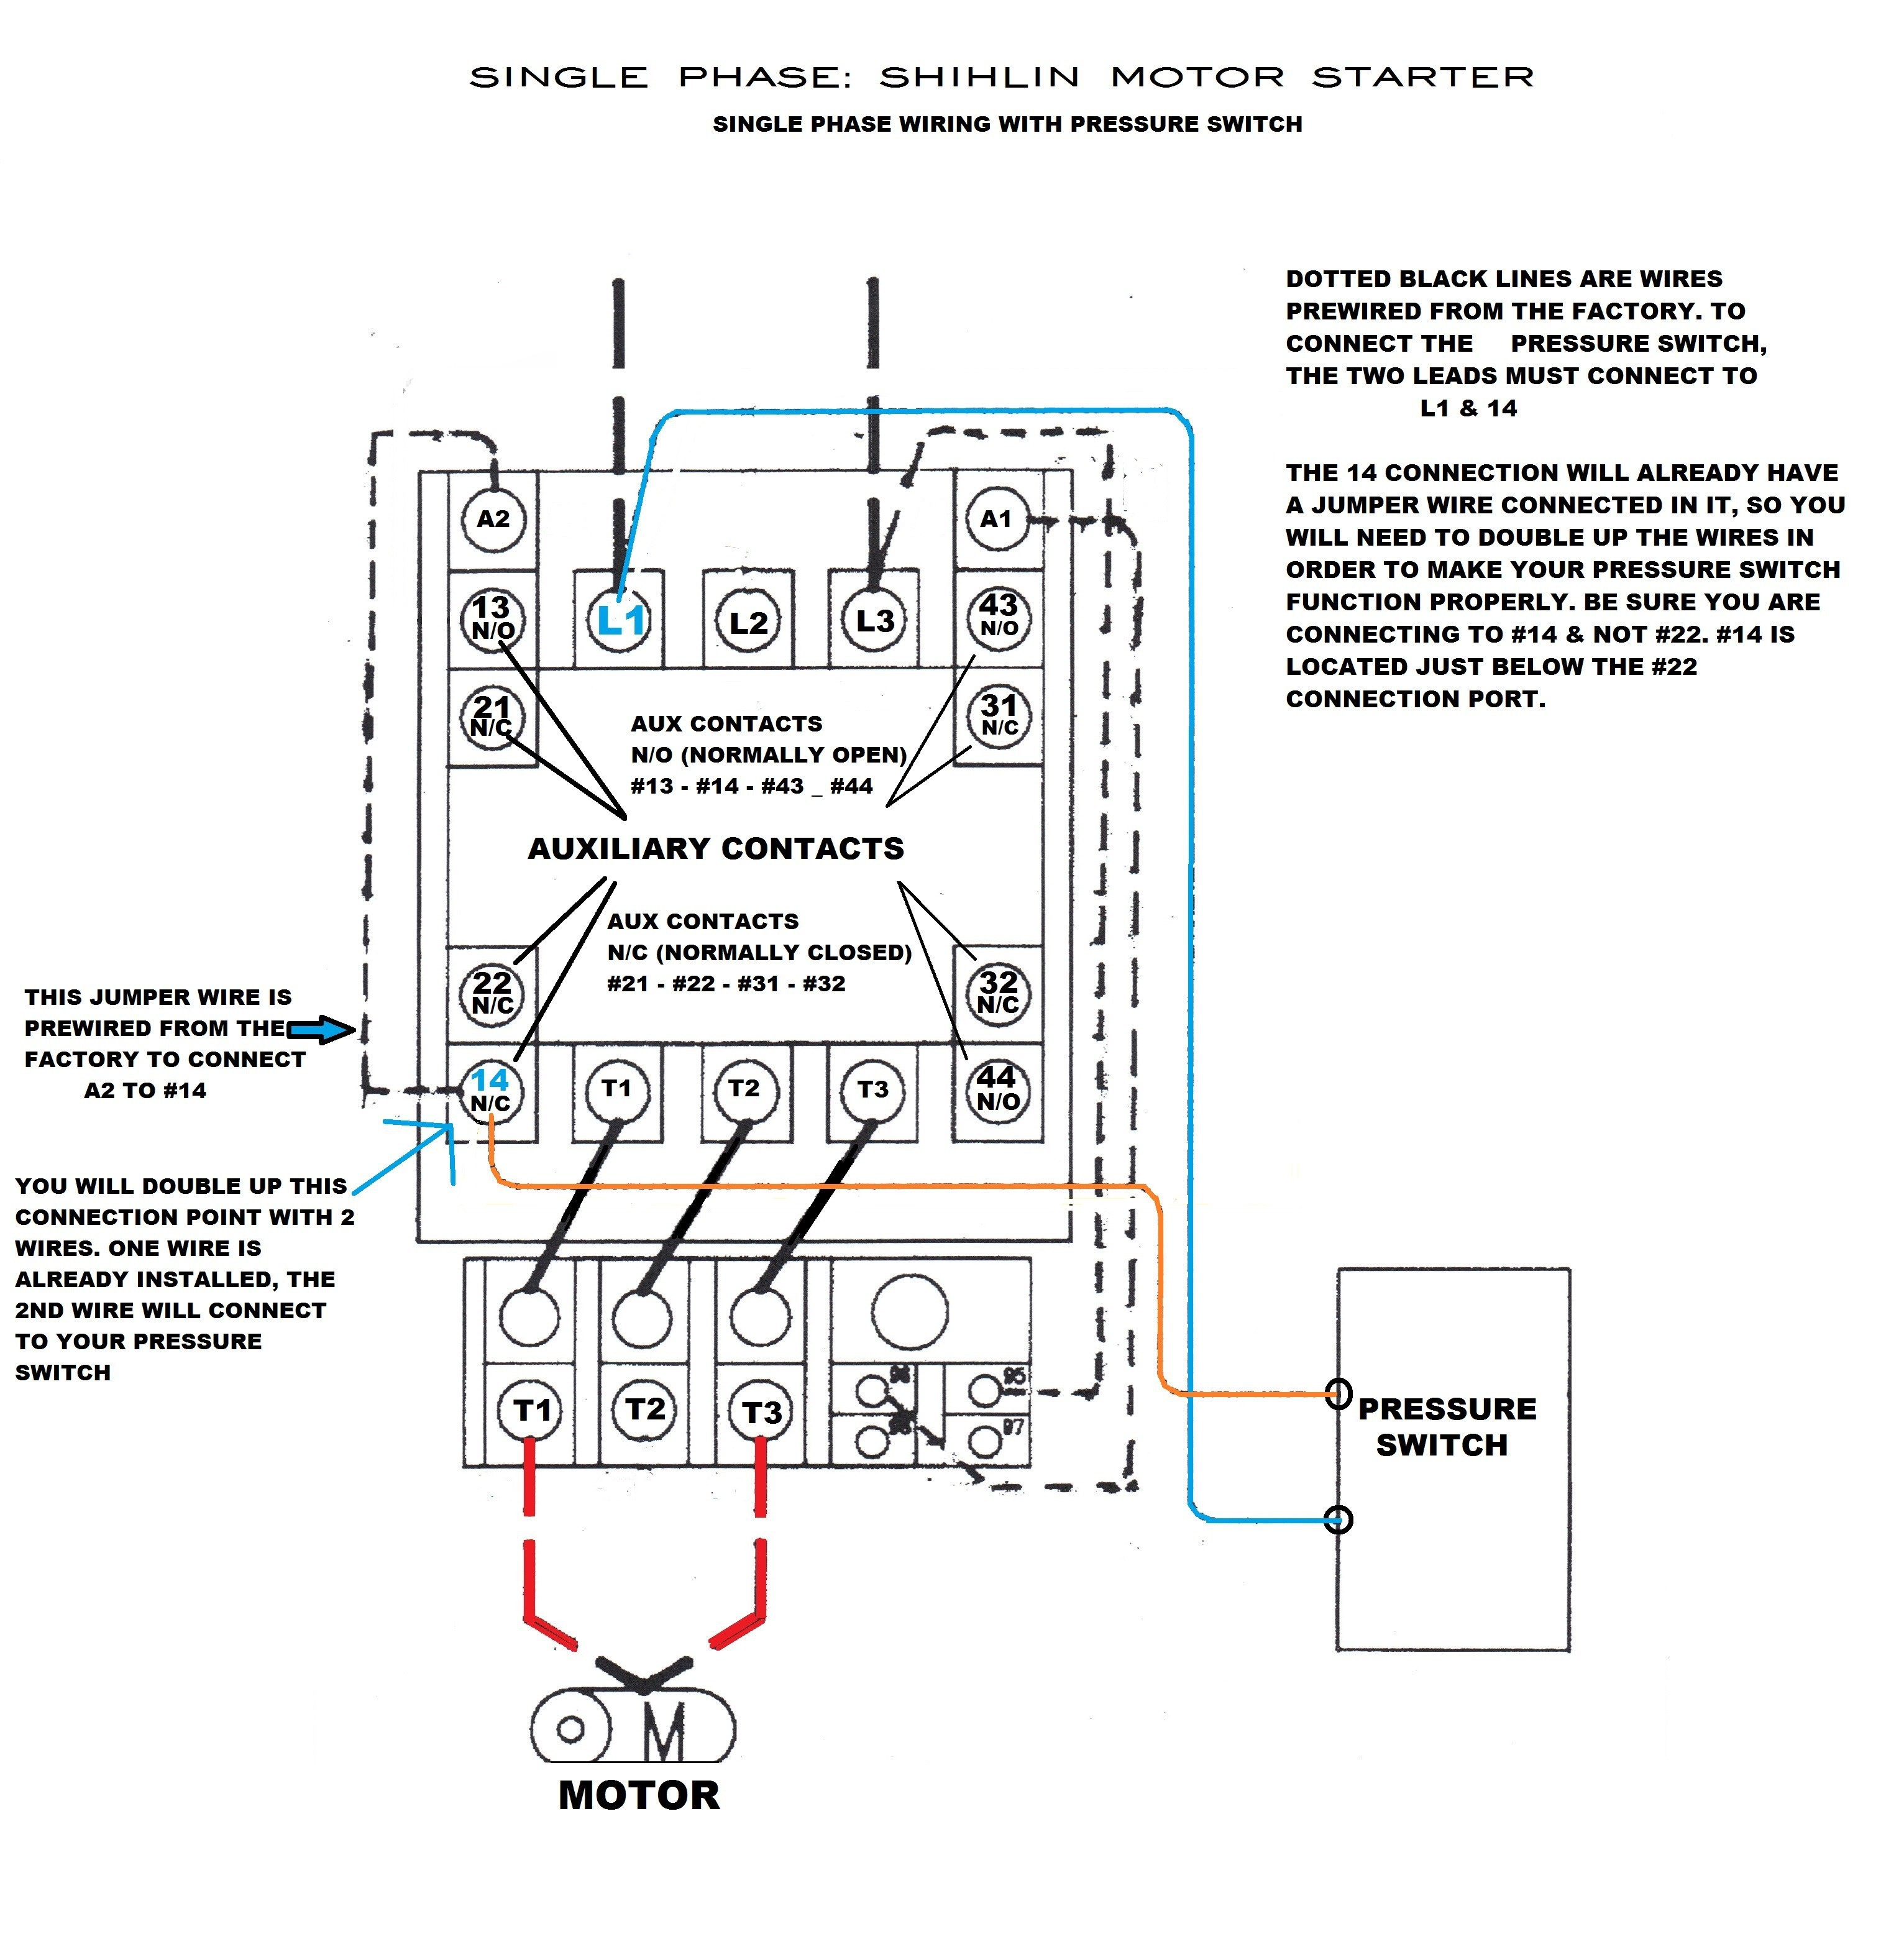 allen bradley 500f bod930 wiring diagram sample. Black Bedroom Furniture Sets. Home Design Ideas